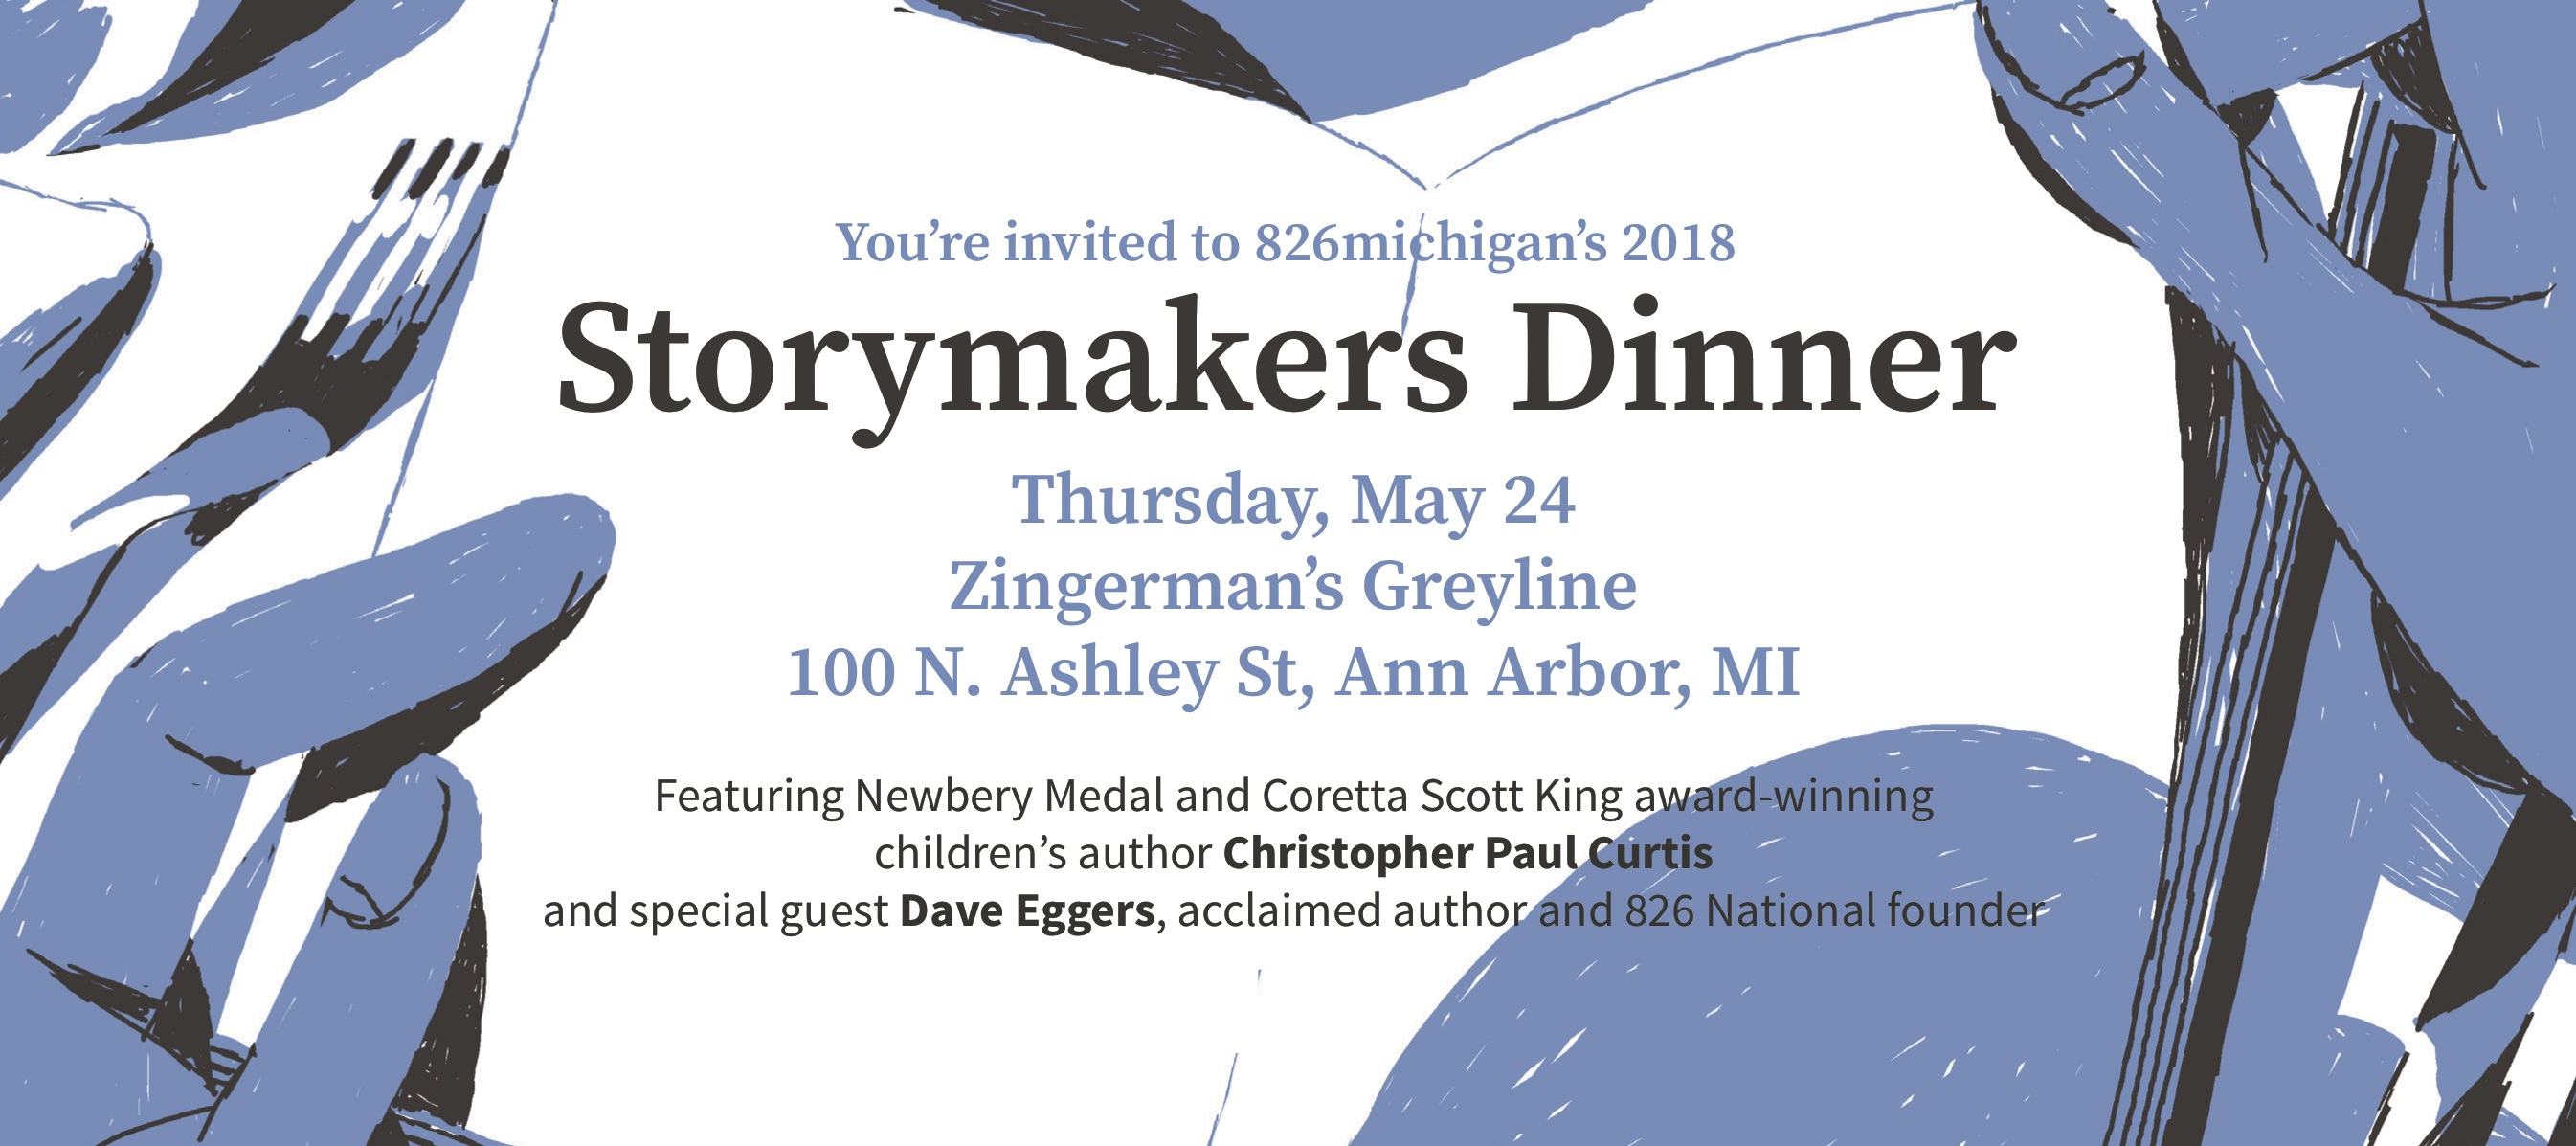 Join us for an evening of food, friends, and stories – all to benefit 826michigan free writing programs!